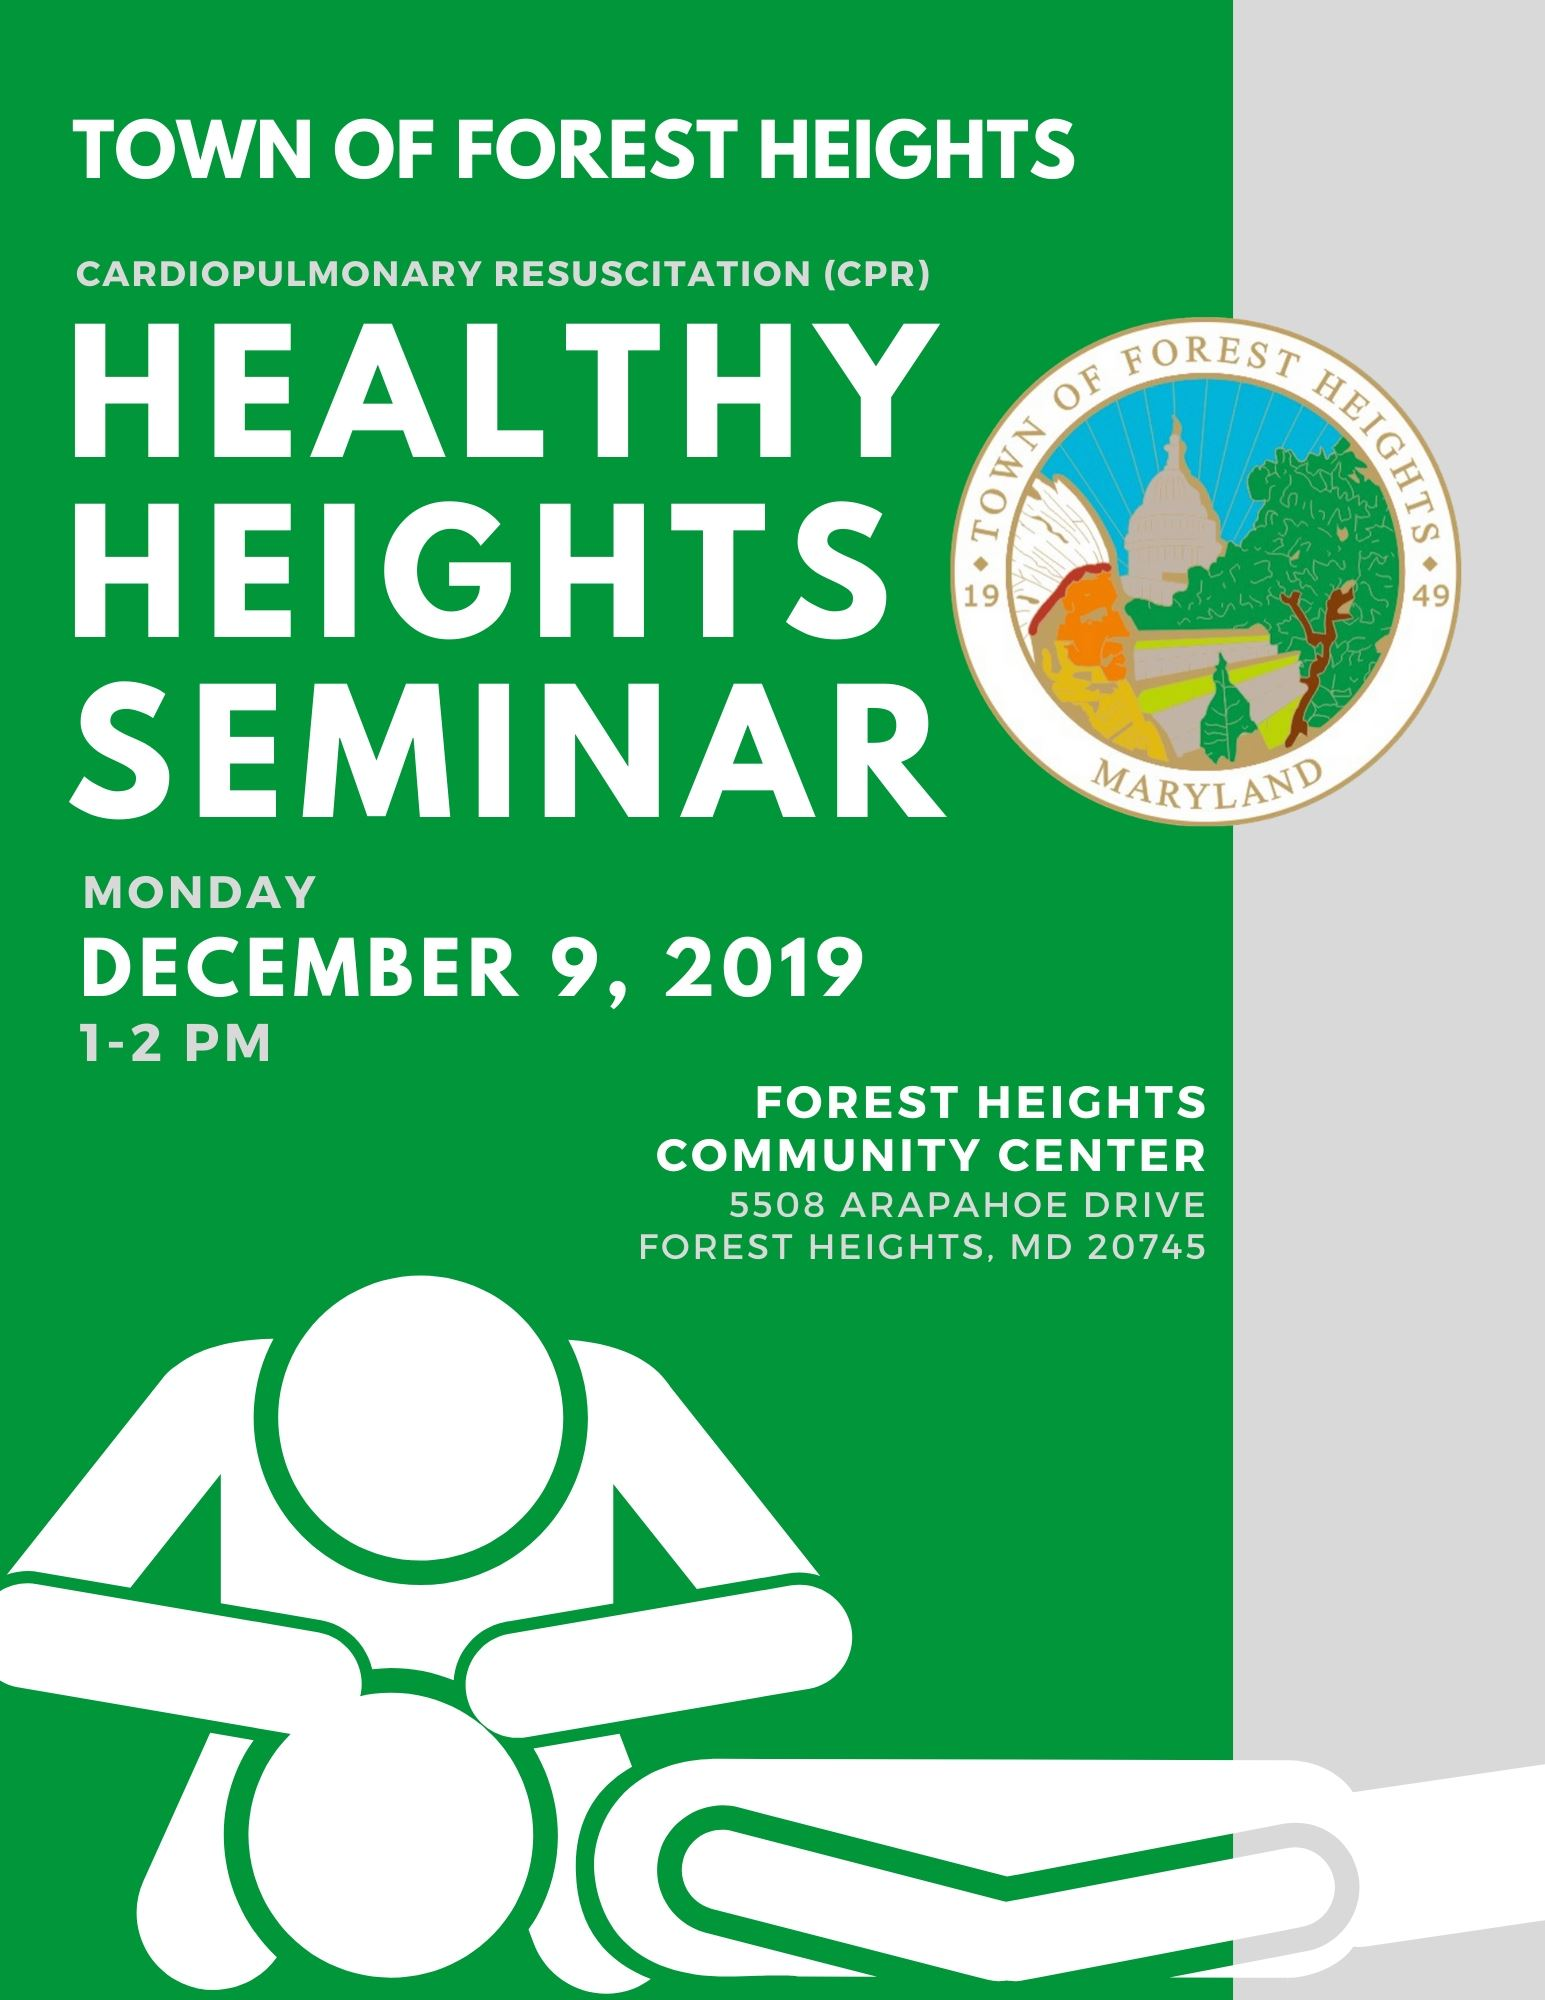 Town of Forest Heights Healthy Heights Seminar